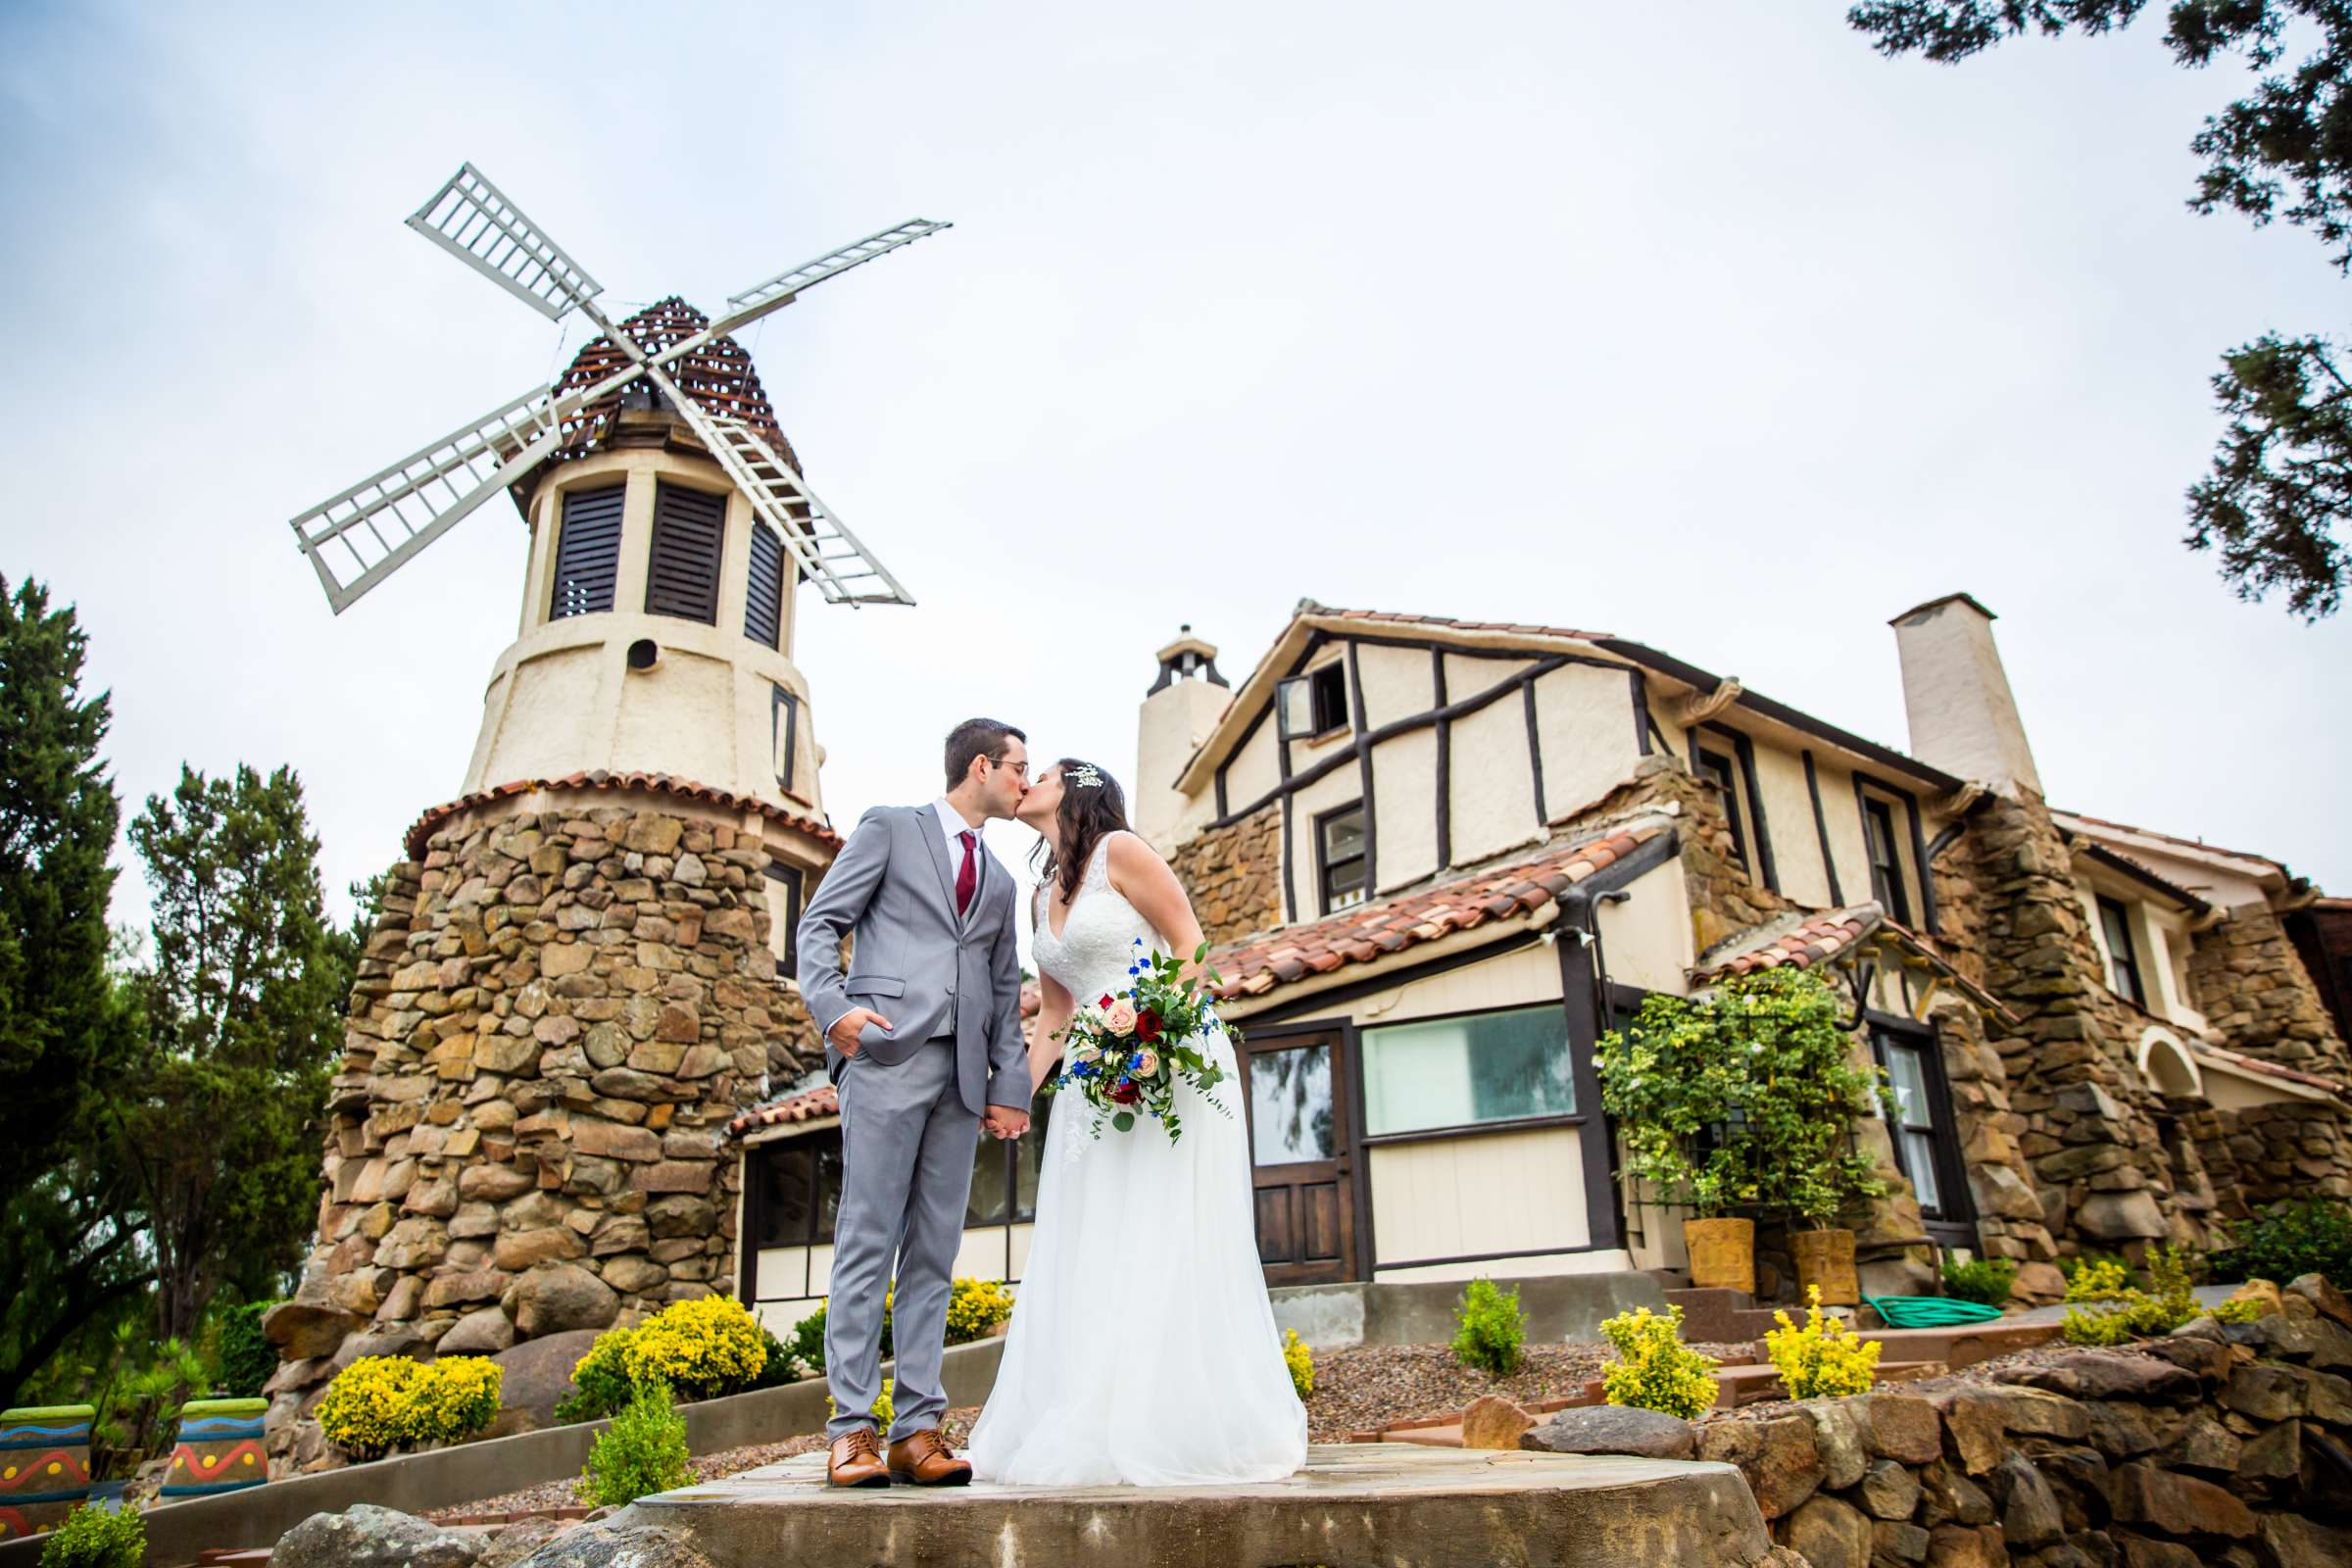 Mt Woodson Castle Wedding, Valerie and Ian Wedding Photo #3 by True Photography